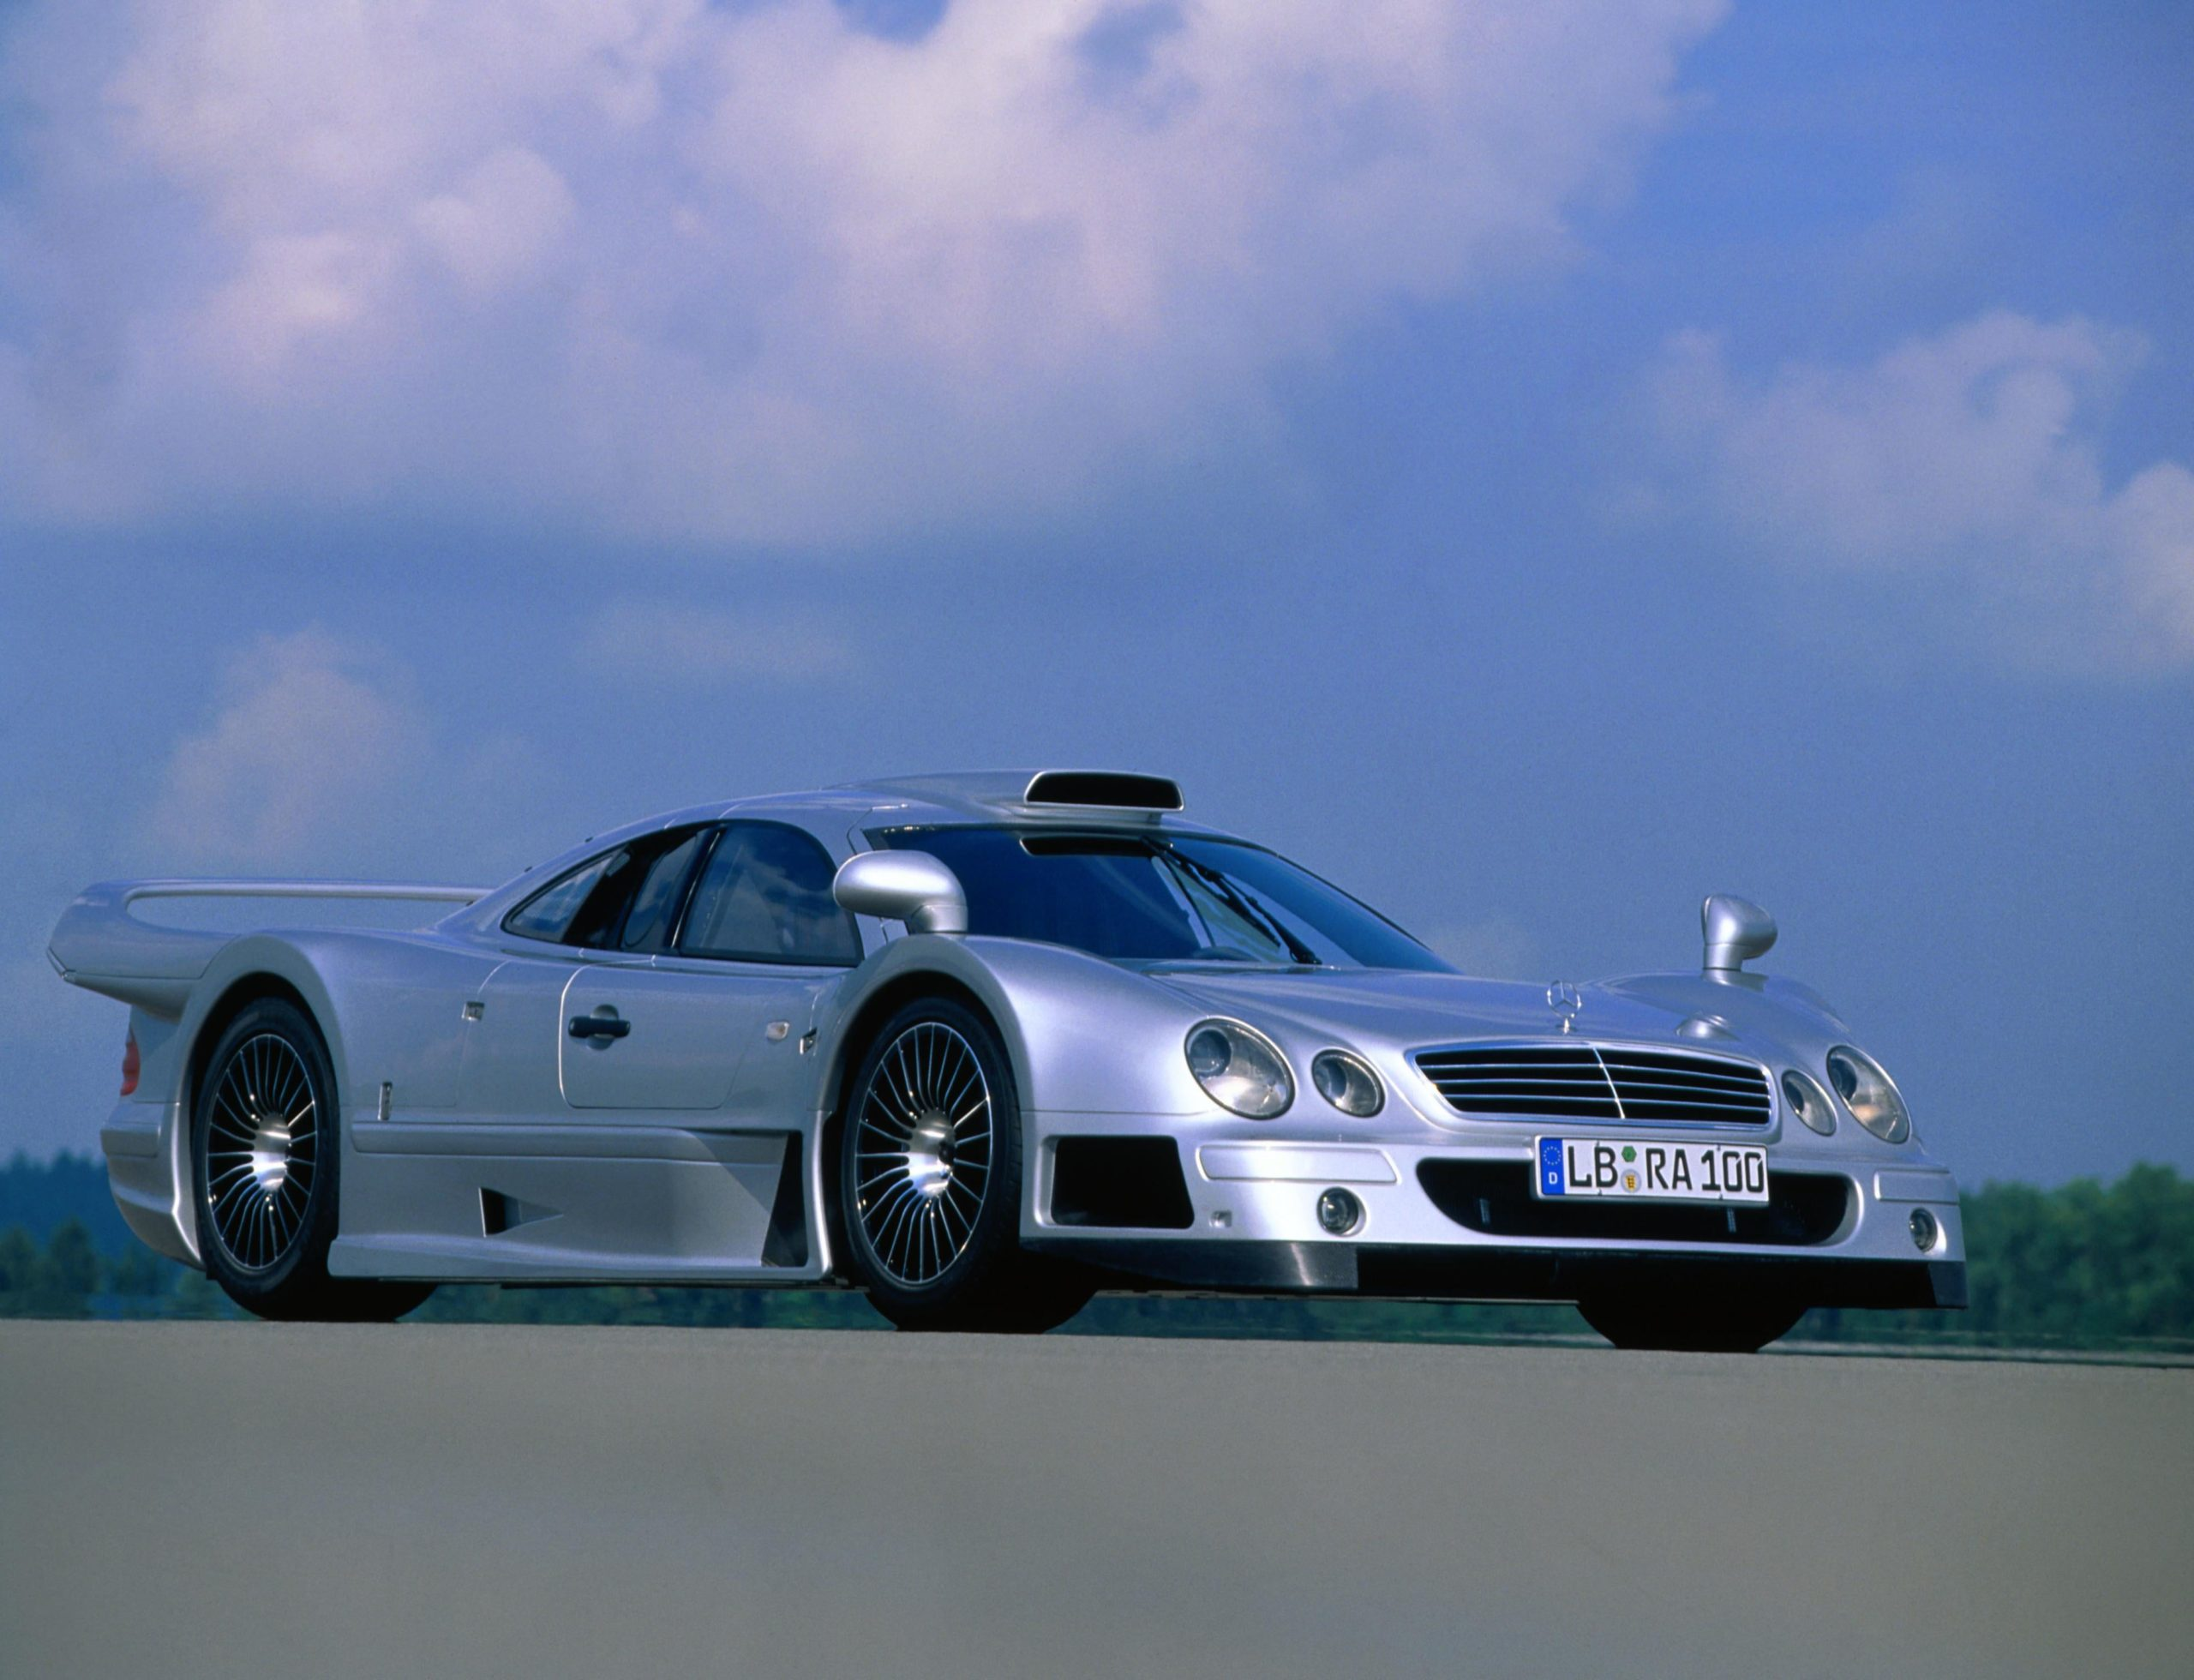 Mercedes-Benz CLK GTR AMG 1997-99 , one of the rarest mercedes of all time